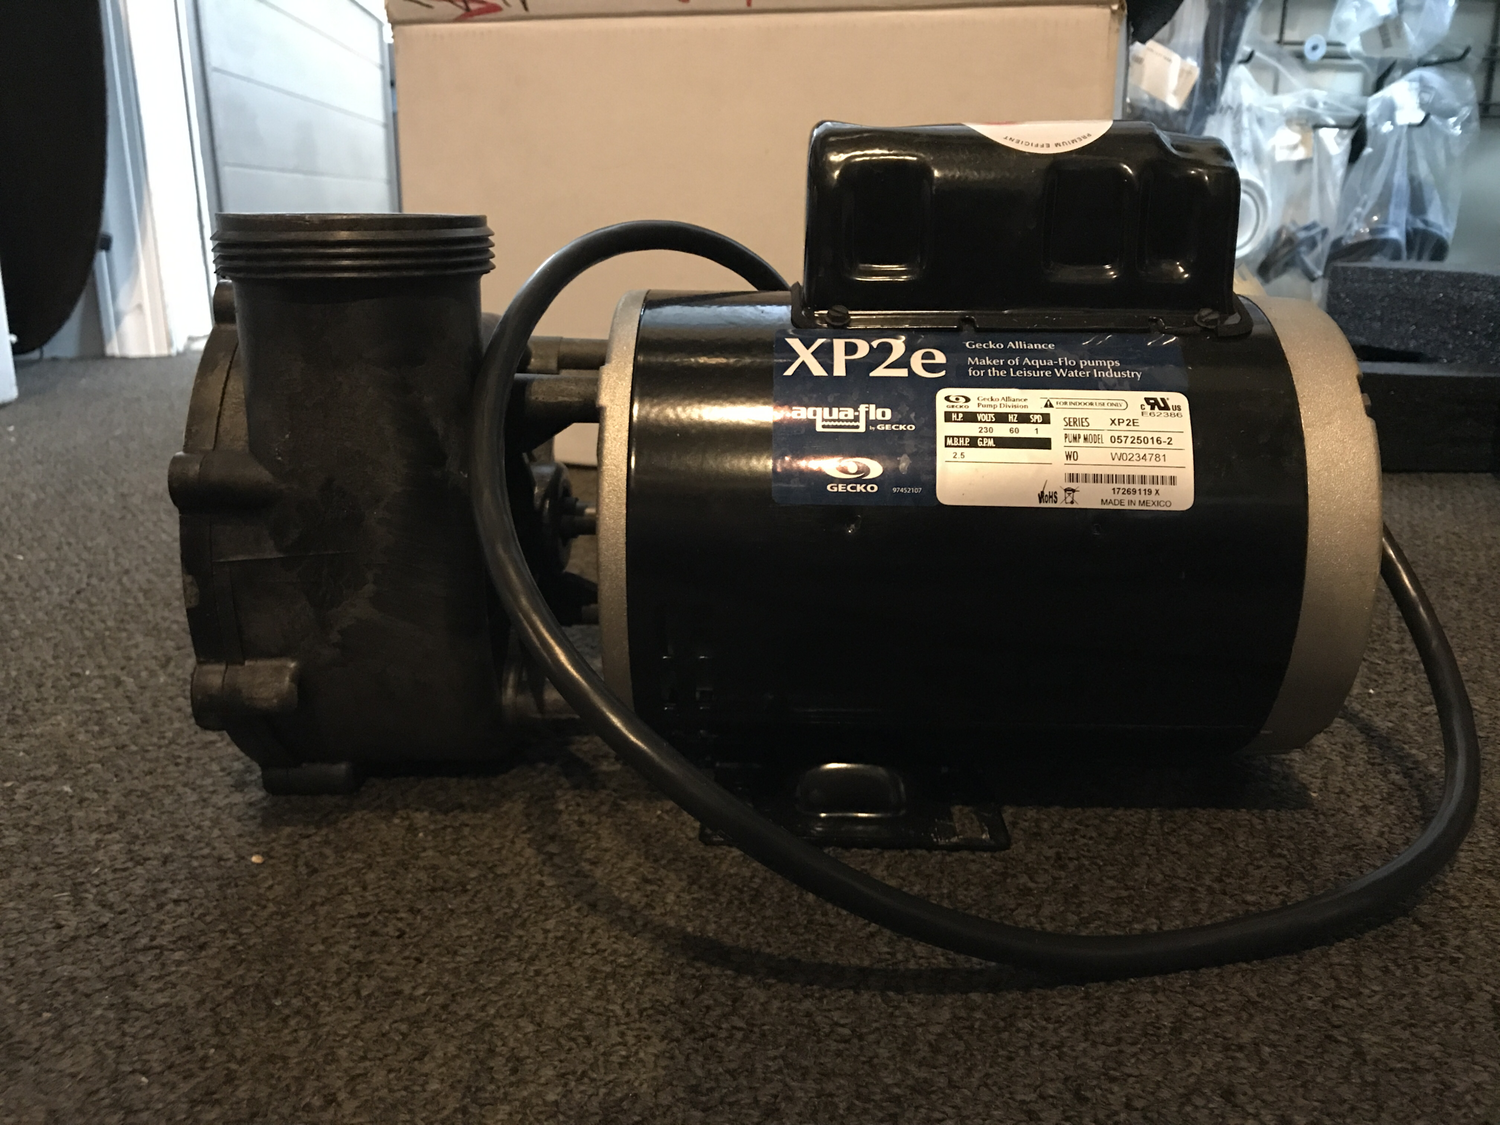 65-2150, PUMP, 2.5/4.8 HP, 240V, 56F, 60HZ, SINGLE SPEED, 2015 - Present